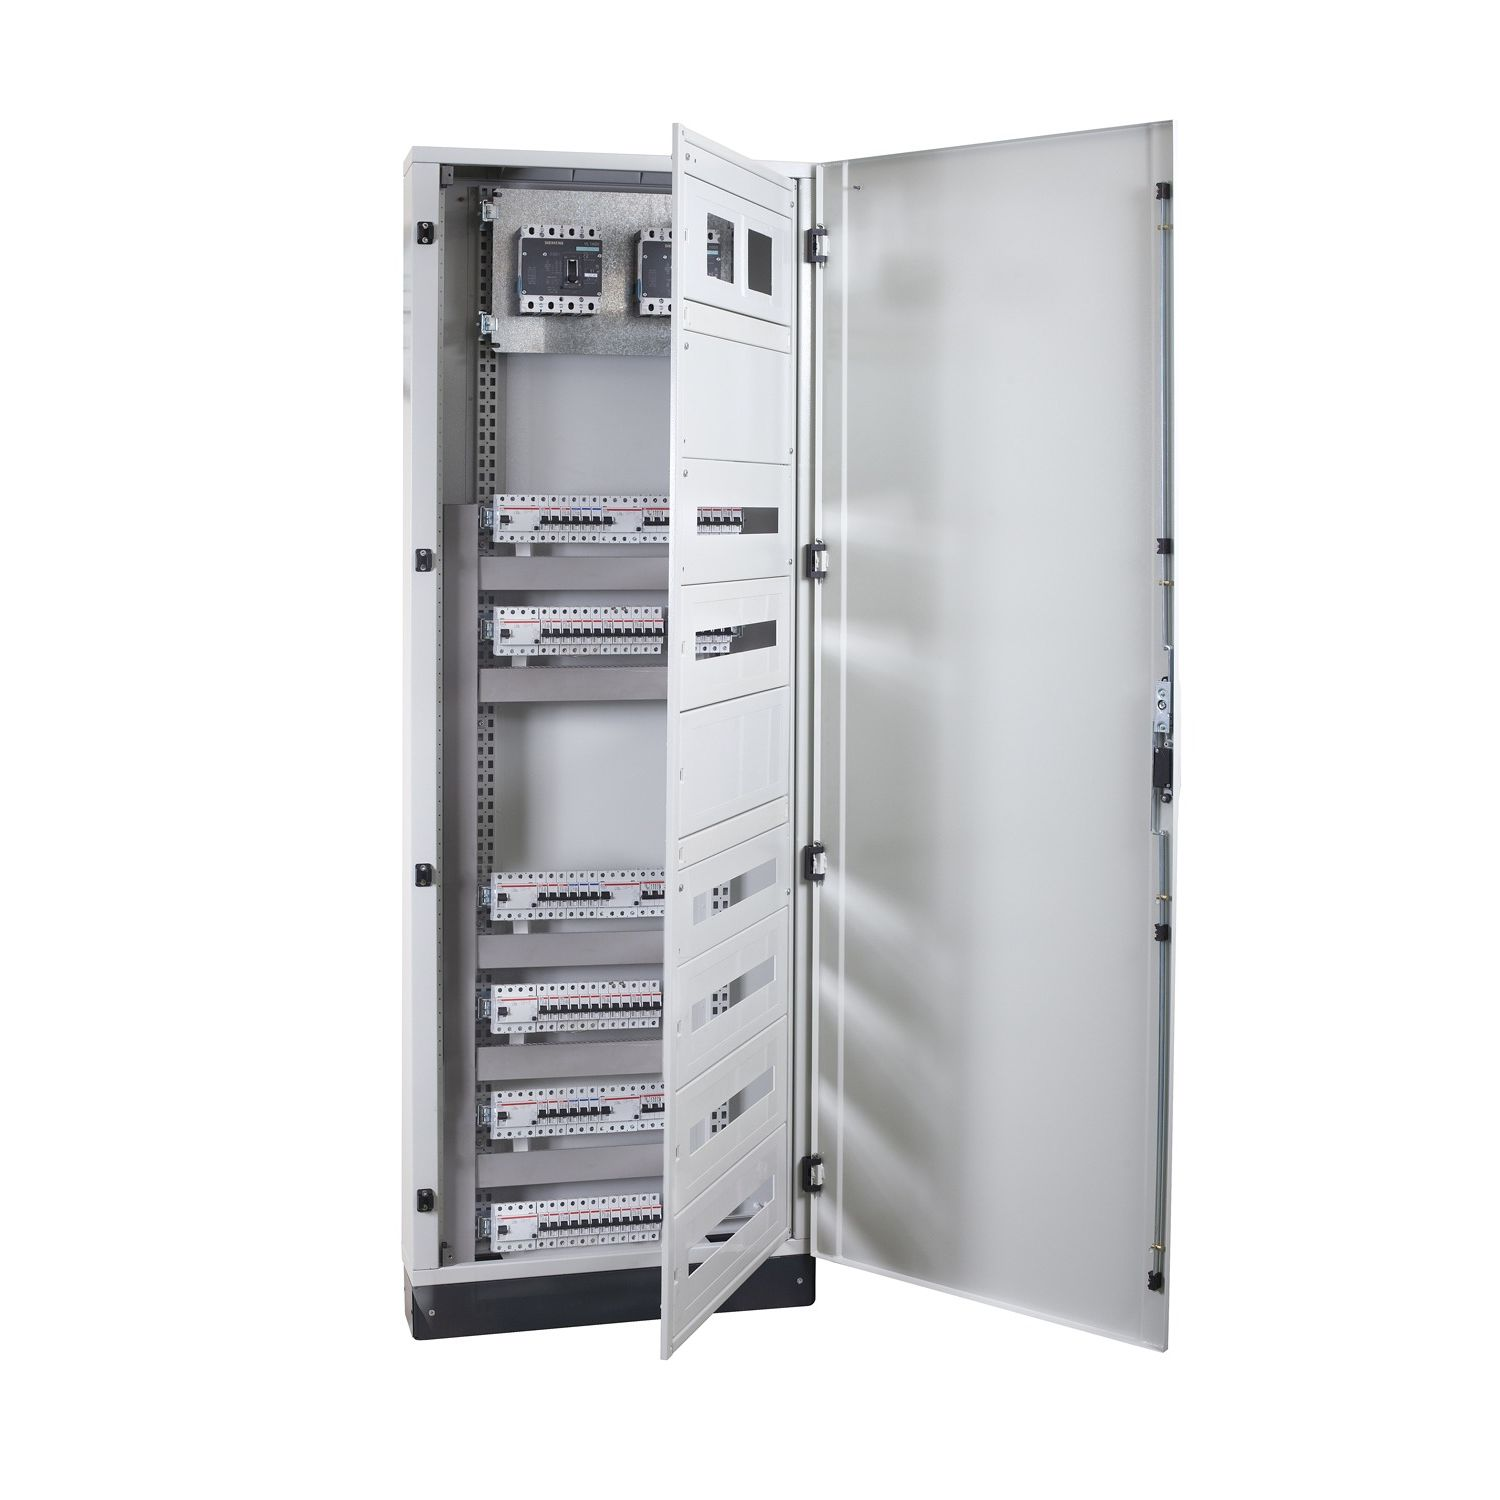 armoire electrique sur pied double porte simple porte floor standing distribution cabinets atlantic plus series